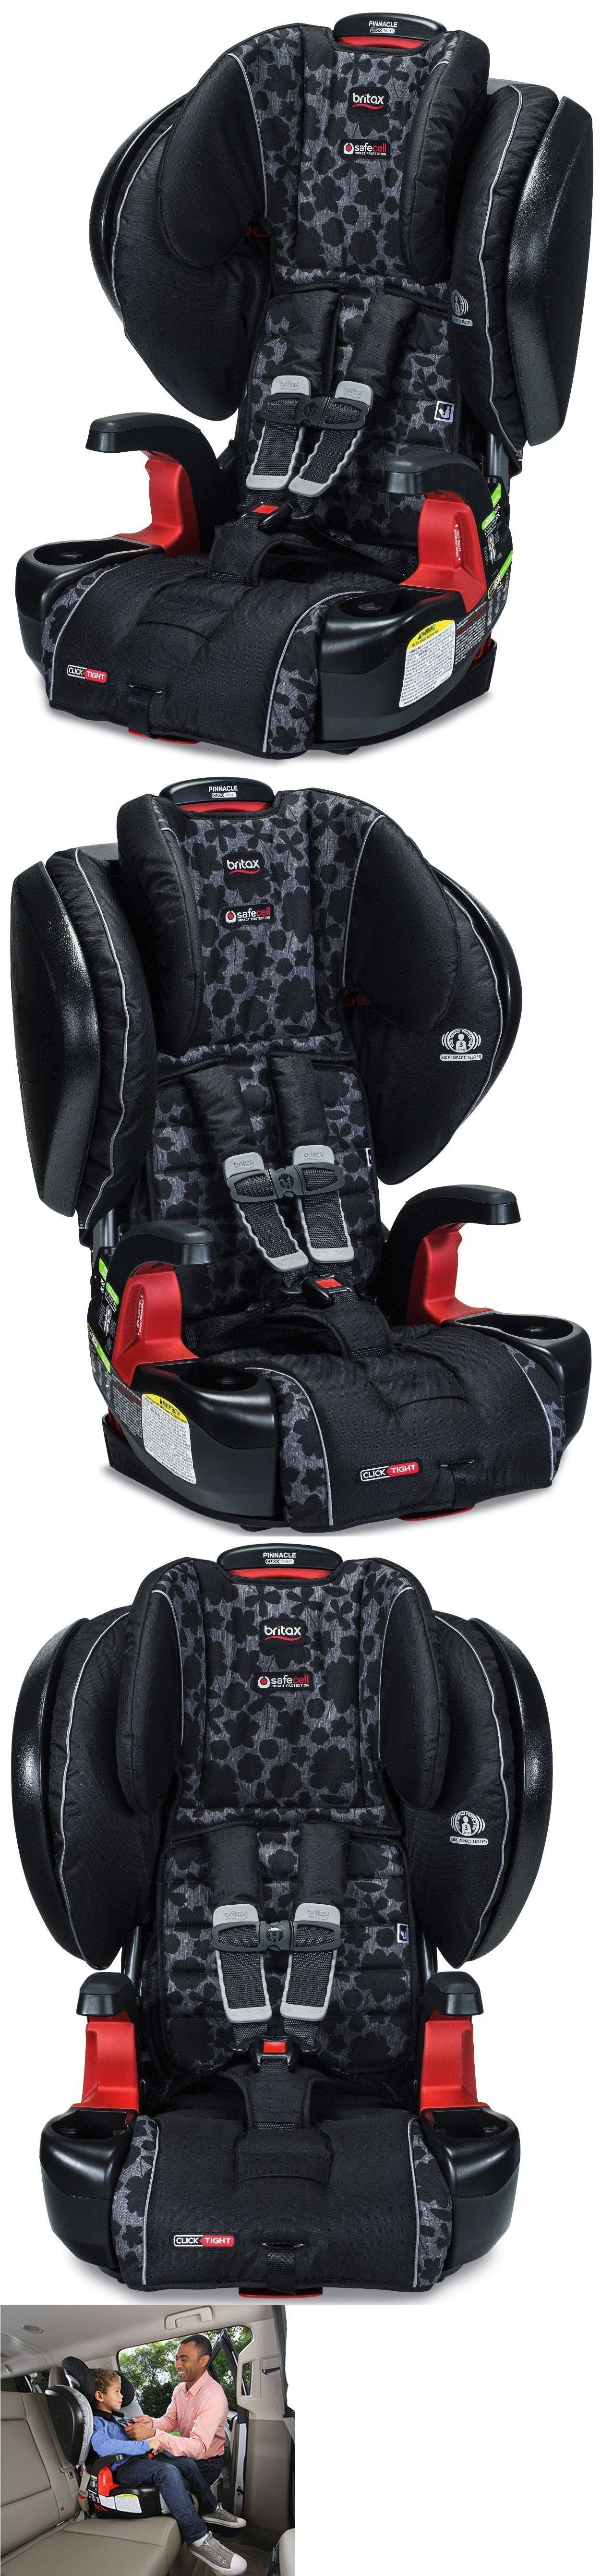 Other Car Safety Seats 2987: Britax Pinnacle Clicktight Combination ...